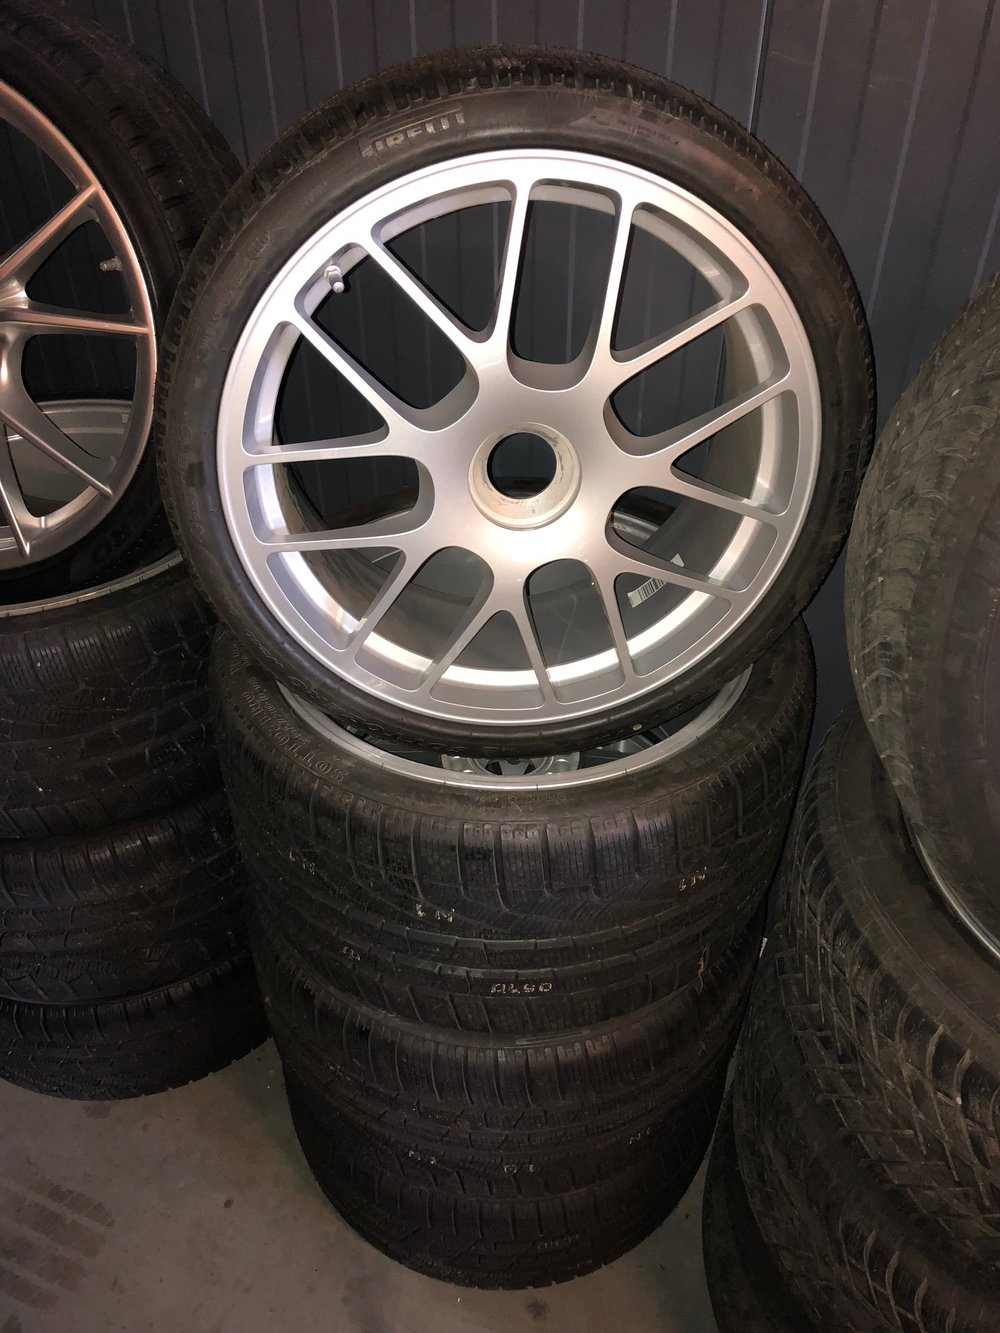 new set 997 MK2 turbo S, GT3 RS,GT2, …(with new winter tyres, possibility with summer tyres)